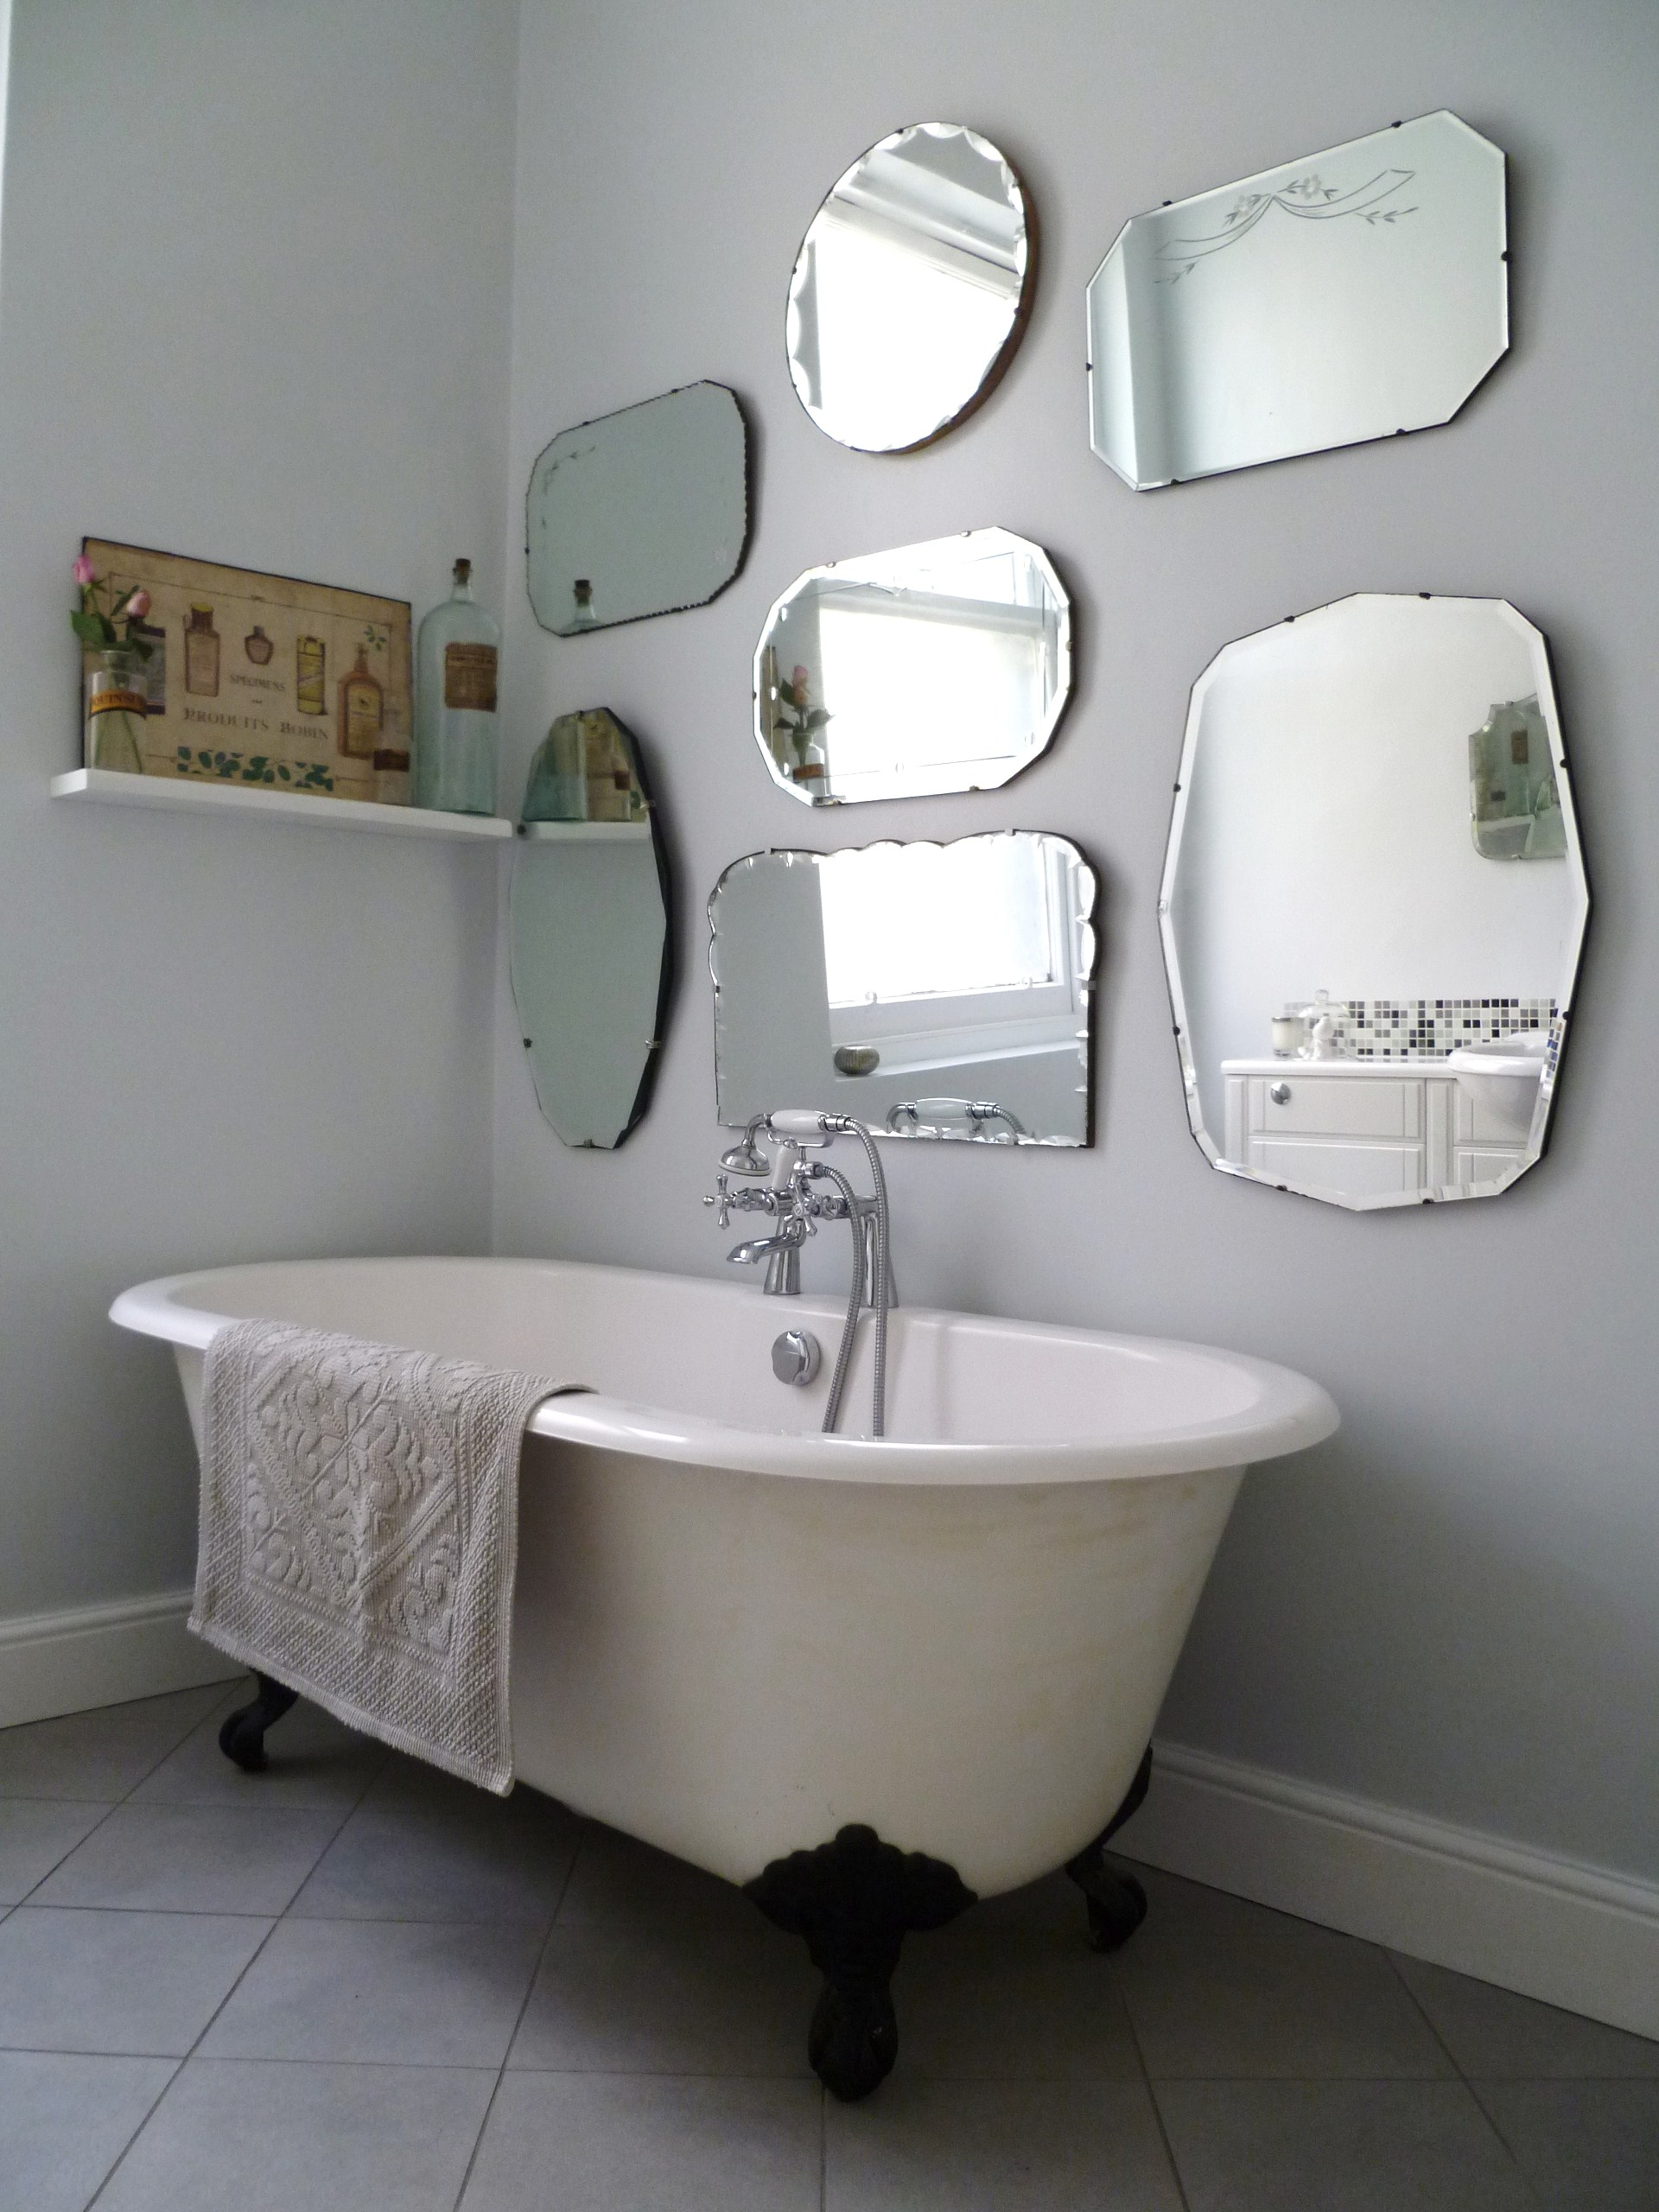 Antique Looking Bathroom Mirrors Home Pertaining To Retro Bathroom Mirrors (Image 4 of 15)